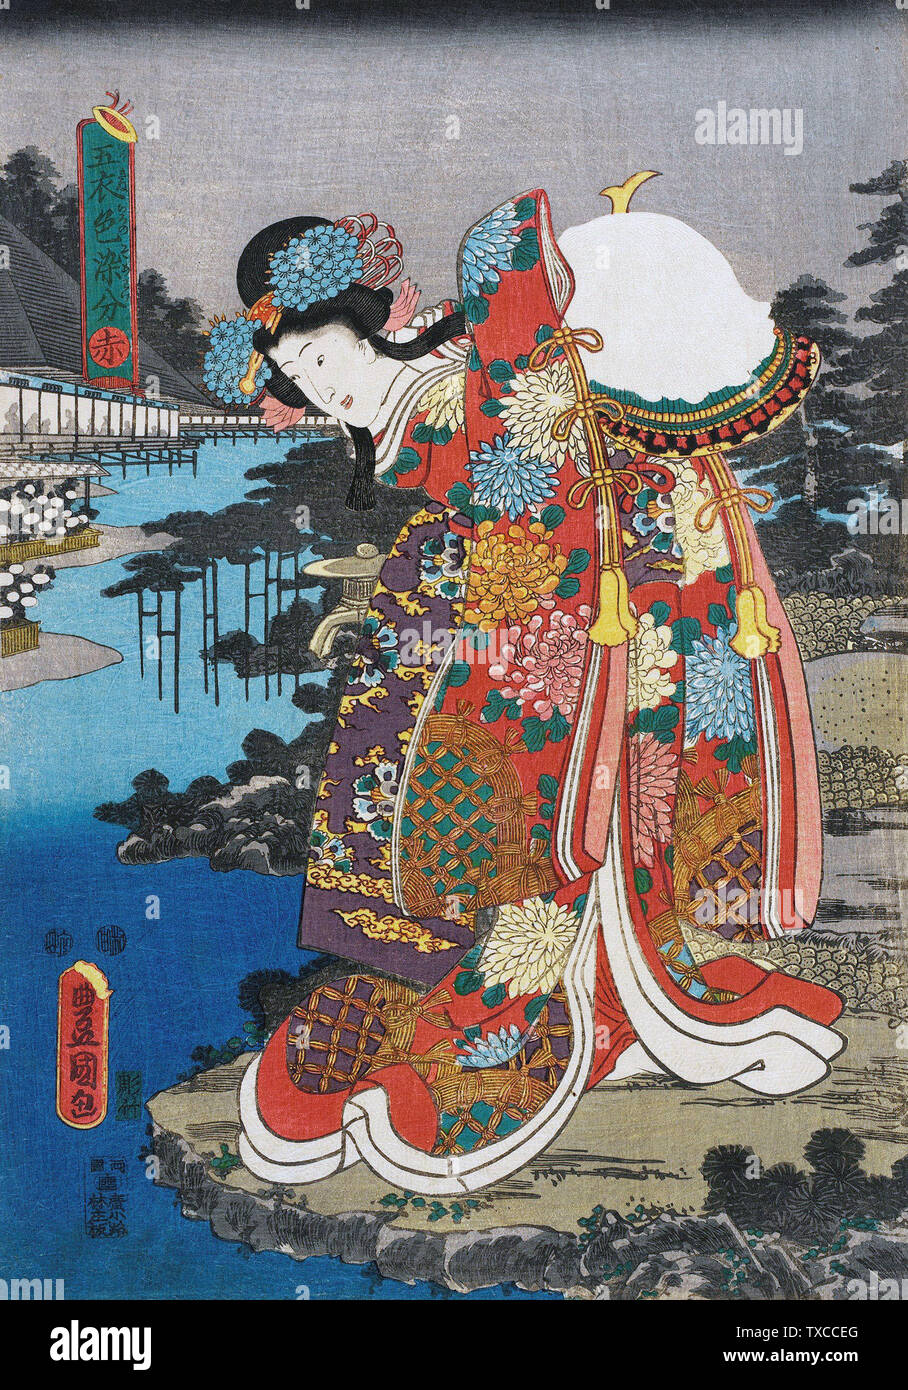 """""""Red; English:  Japan, circa 1847-1852 Alternate Title: Aka Series: Costumes in Five Different Colors Prints; woodcuts Polychrome woodblock print Image: 14 5/16 x 10 1/16 in. (36.4 x 25.5 cm);  Paper: 14 1/2 x 10 1/8 in. (36.8 x 25.8 cm) Gift of R. B. and Meryl Bonney (M.86.326.5) Japanese Art; between circa 1847 and circa 1852 date QS:P571,+1850-00-00T00:00:00Z/7,P1319,+1847-00-00T00:00:00Z/9,P1326,+1852-00-00T00:00:00Z/9,P1480,Q5727902; """" Stock Photo"""